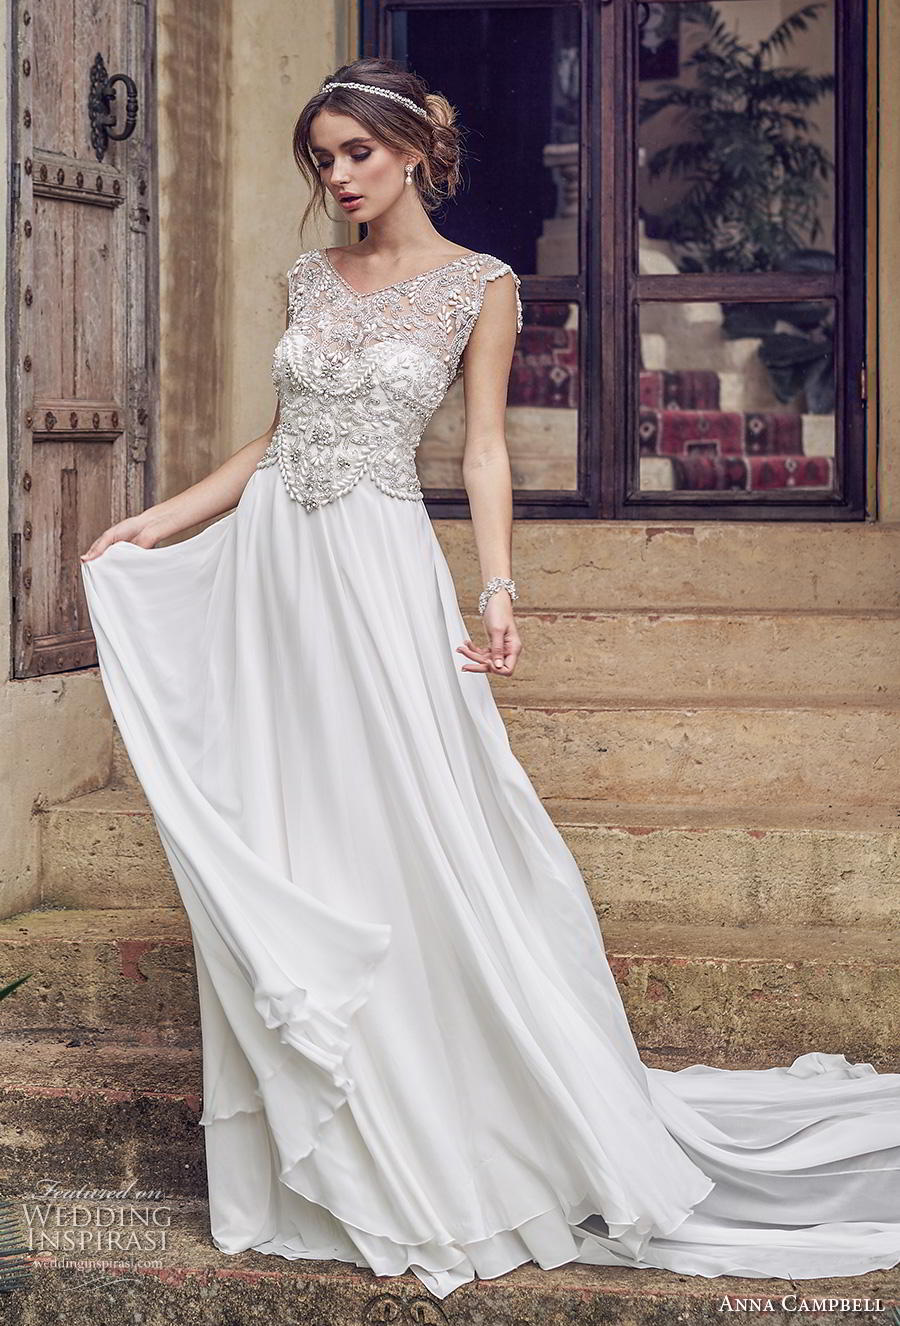 anna campbell 2019 bridal cap sleeves v neck heavily embellished bodice glitzy romantic soft a line wedding dress backless scoop back chapel train (3) mv